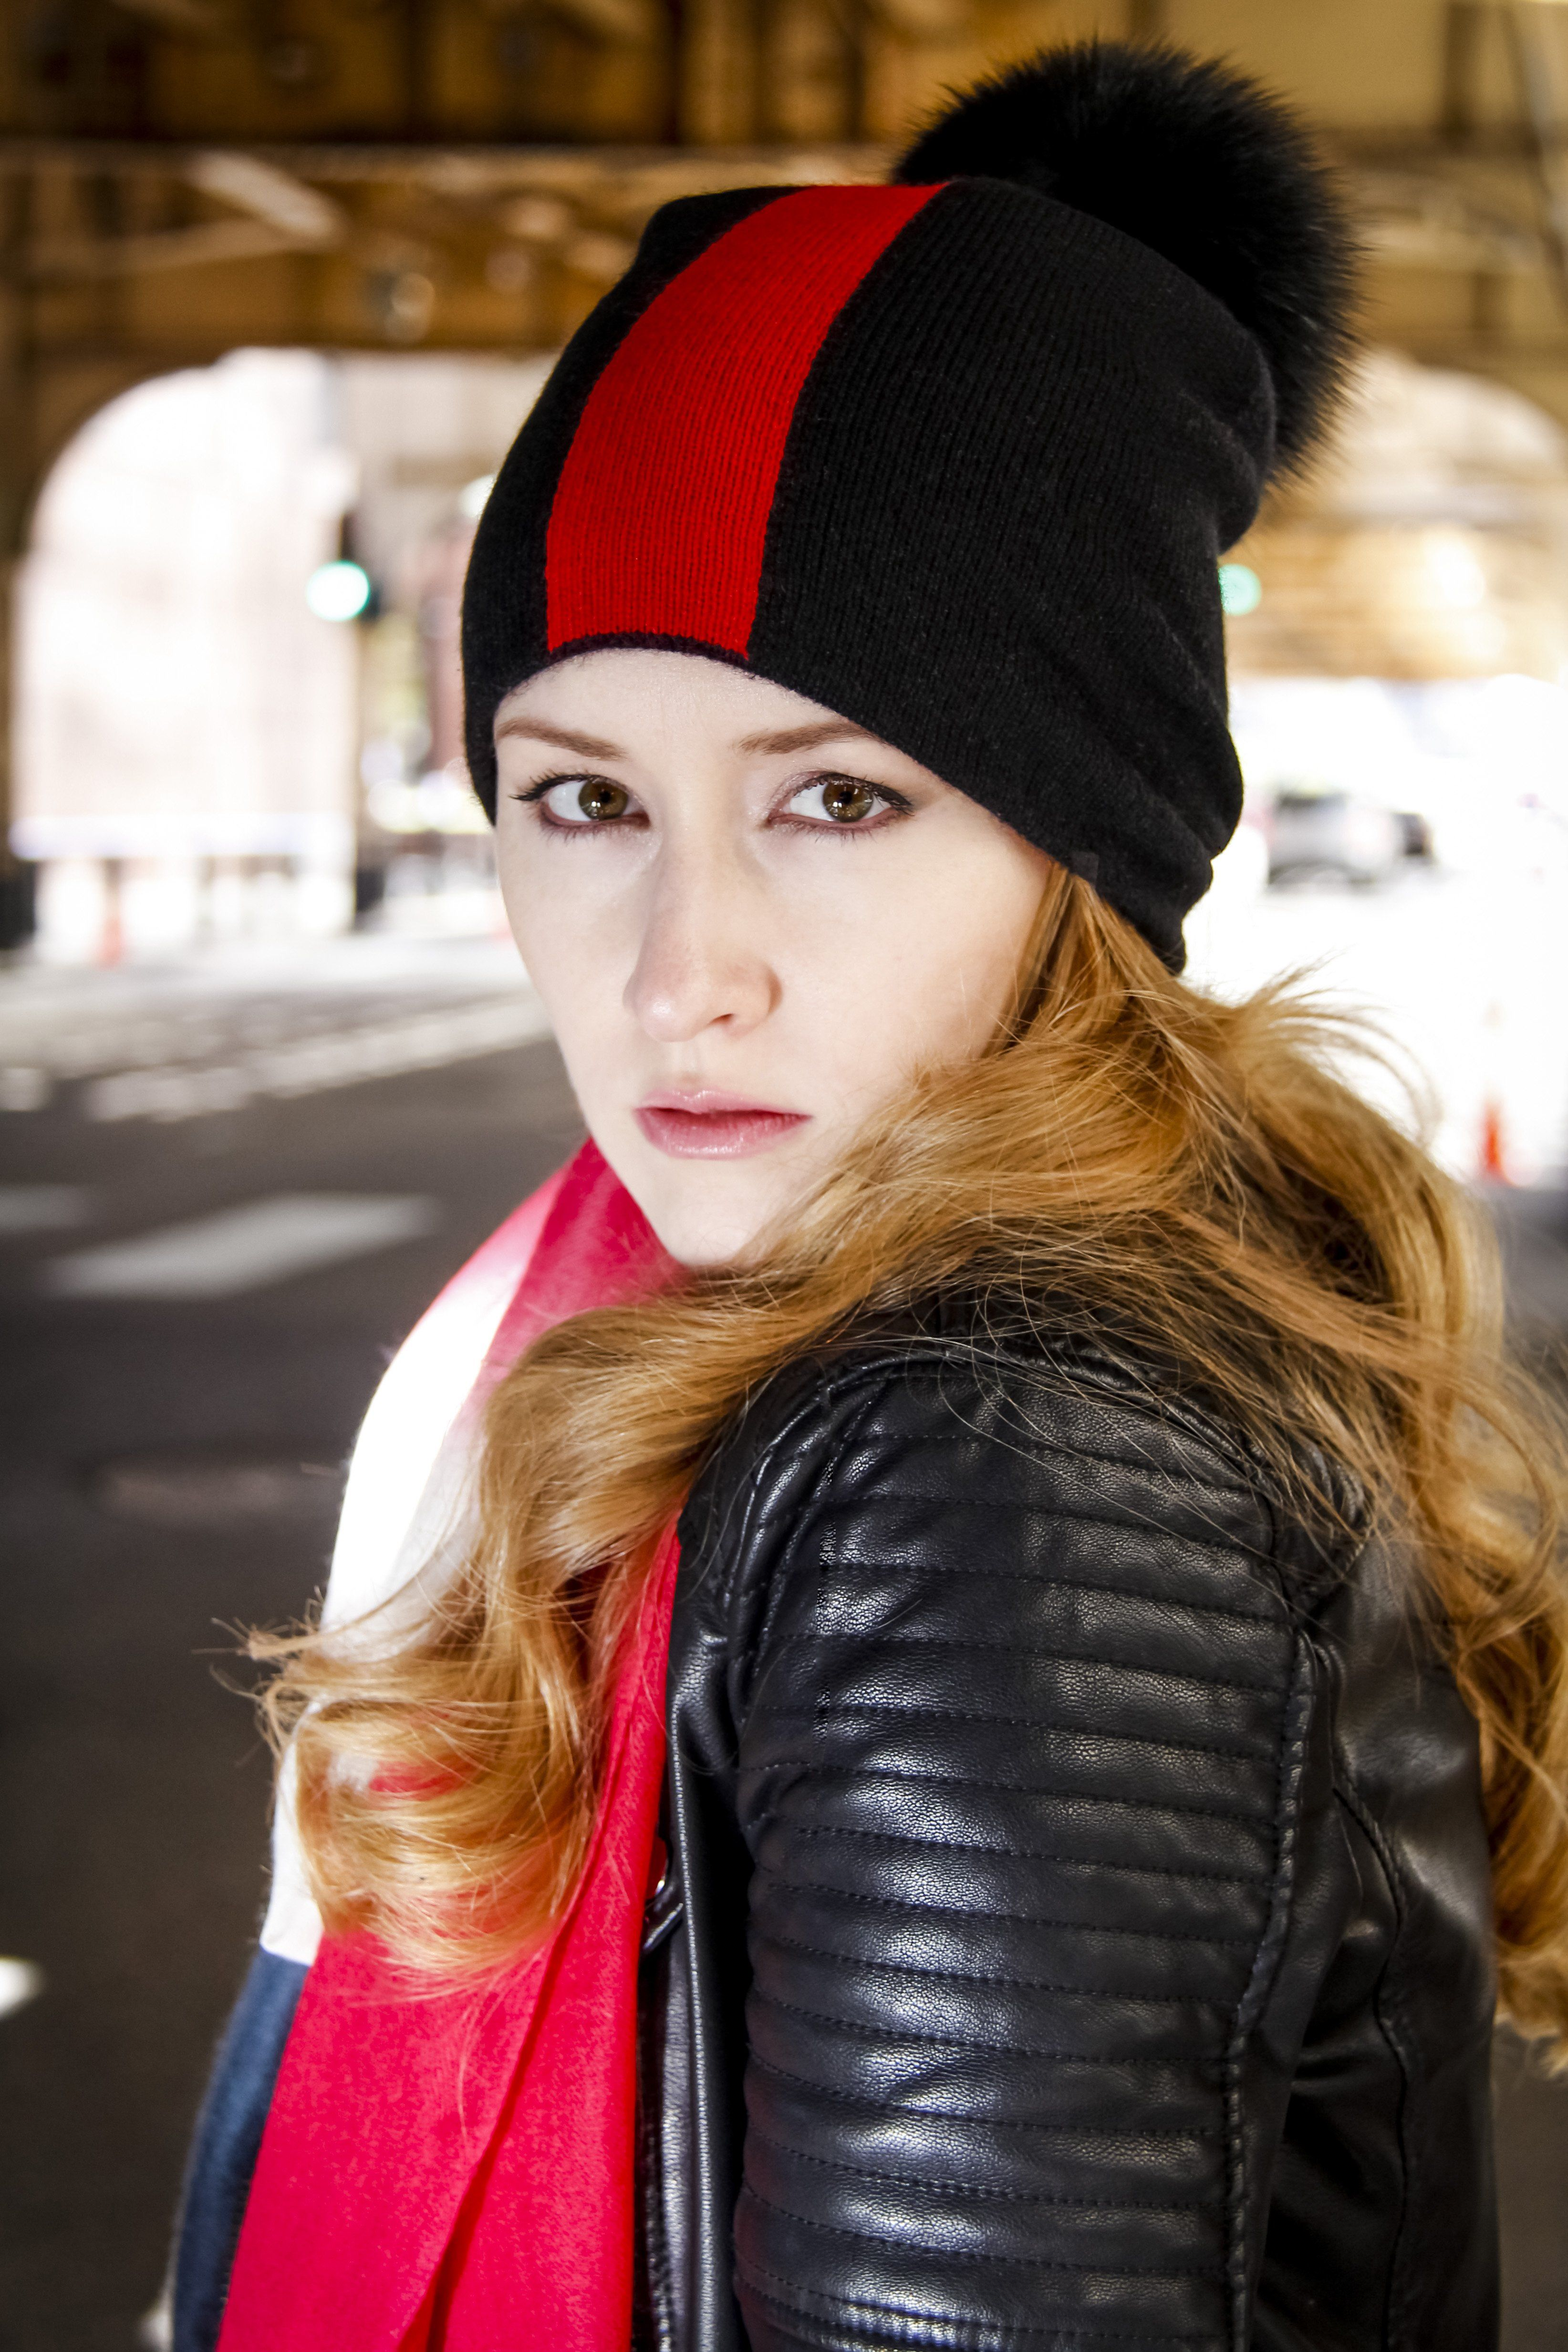 Reversible Slouchy Black and Red Striped Cashmere Hat with Black Pom ... 11d88cfd816a